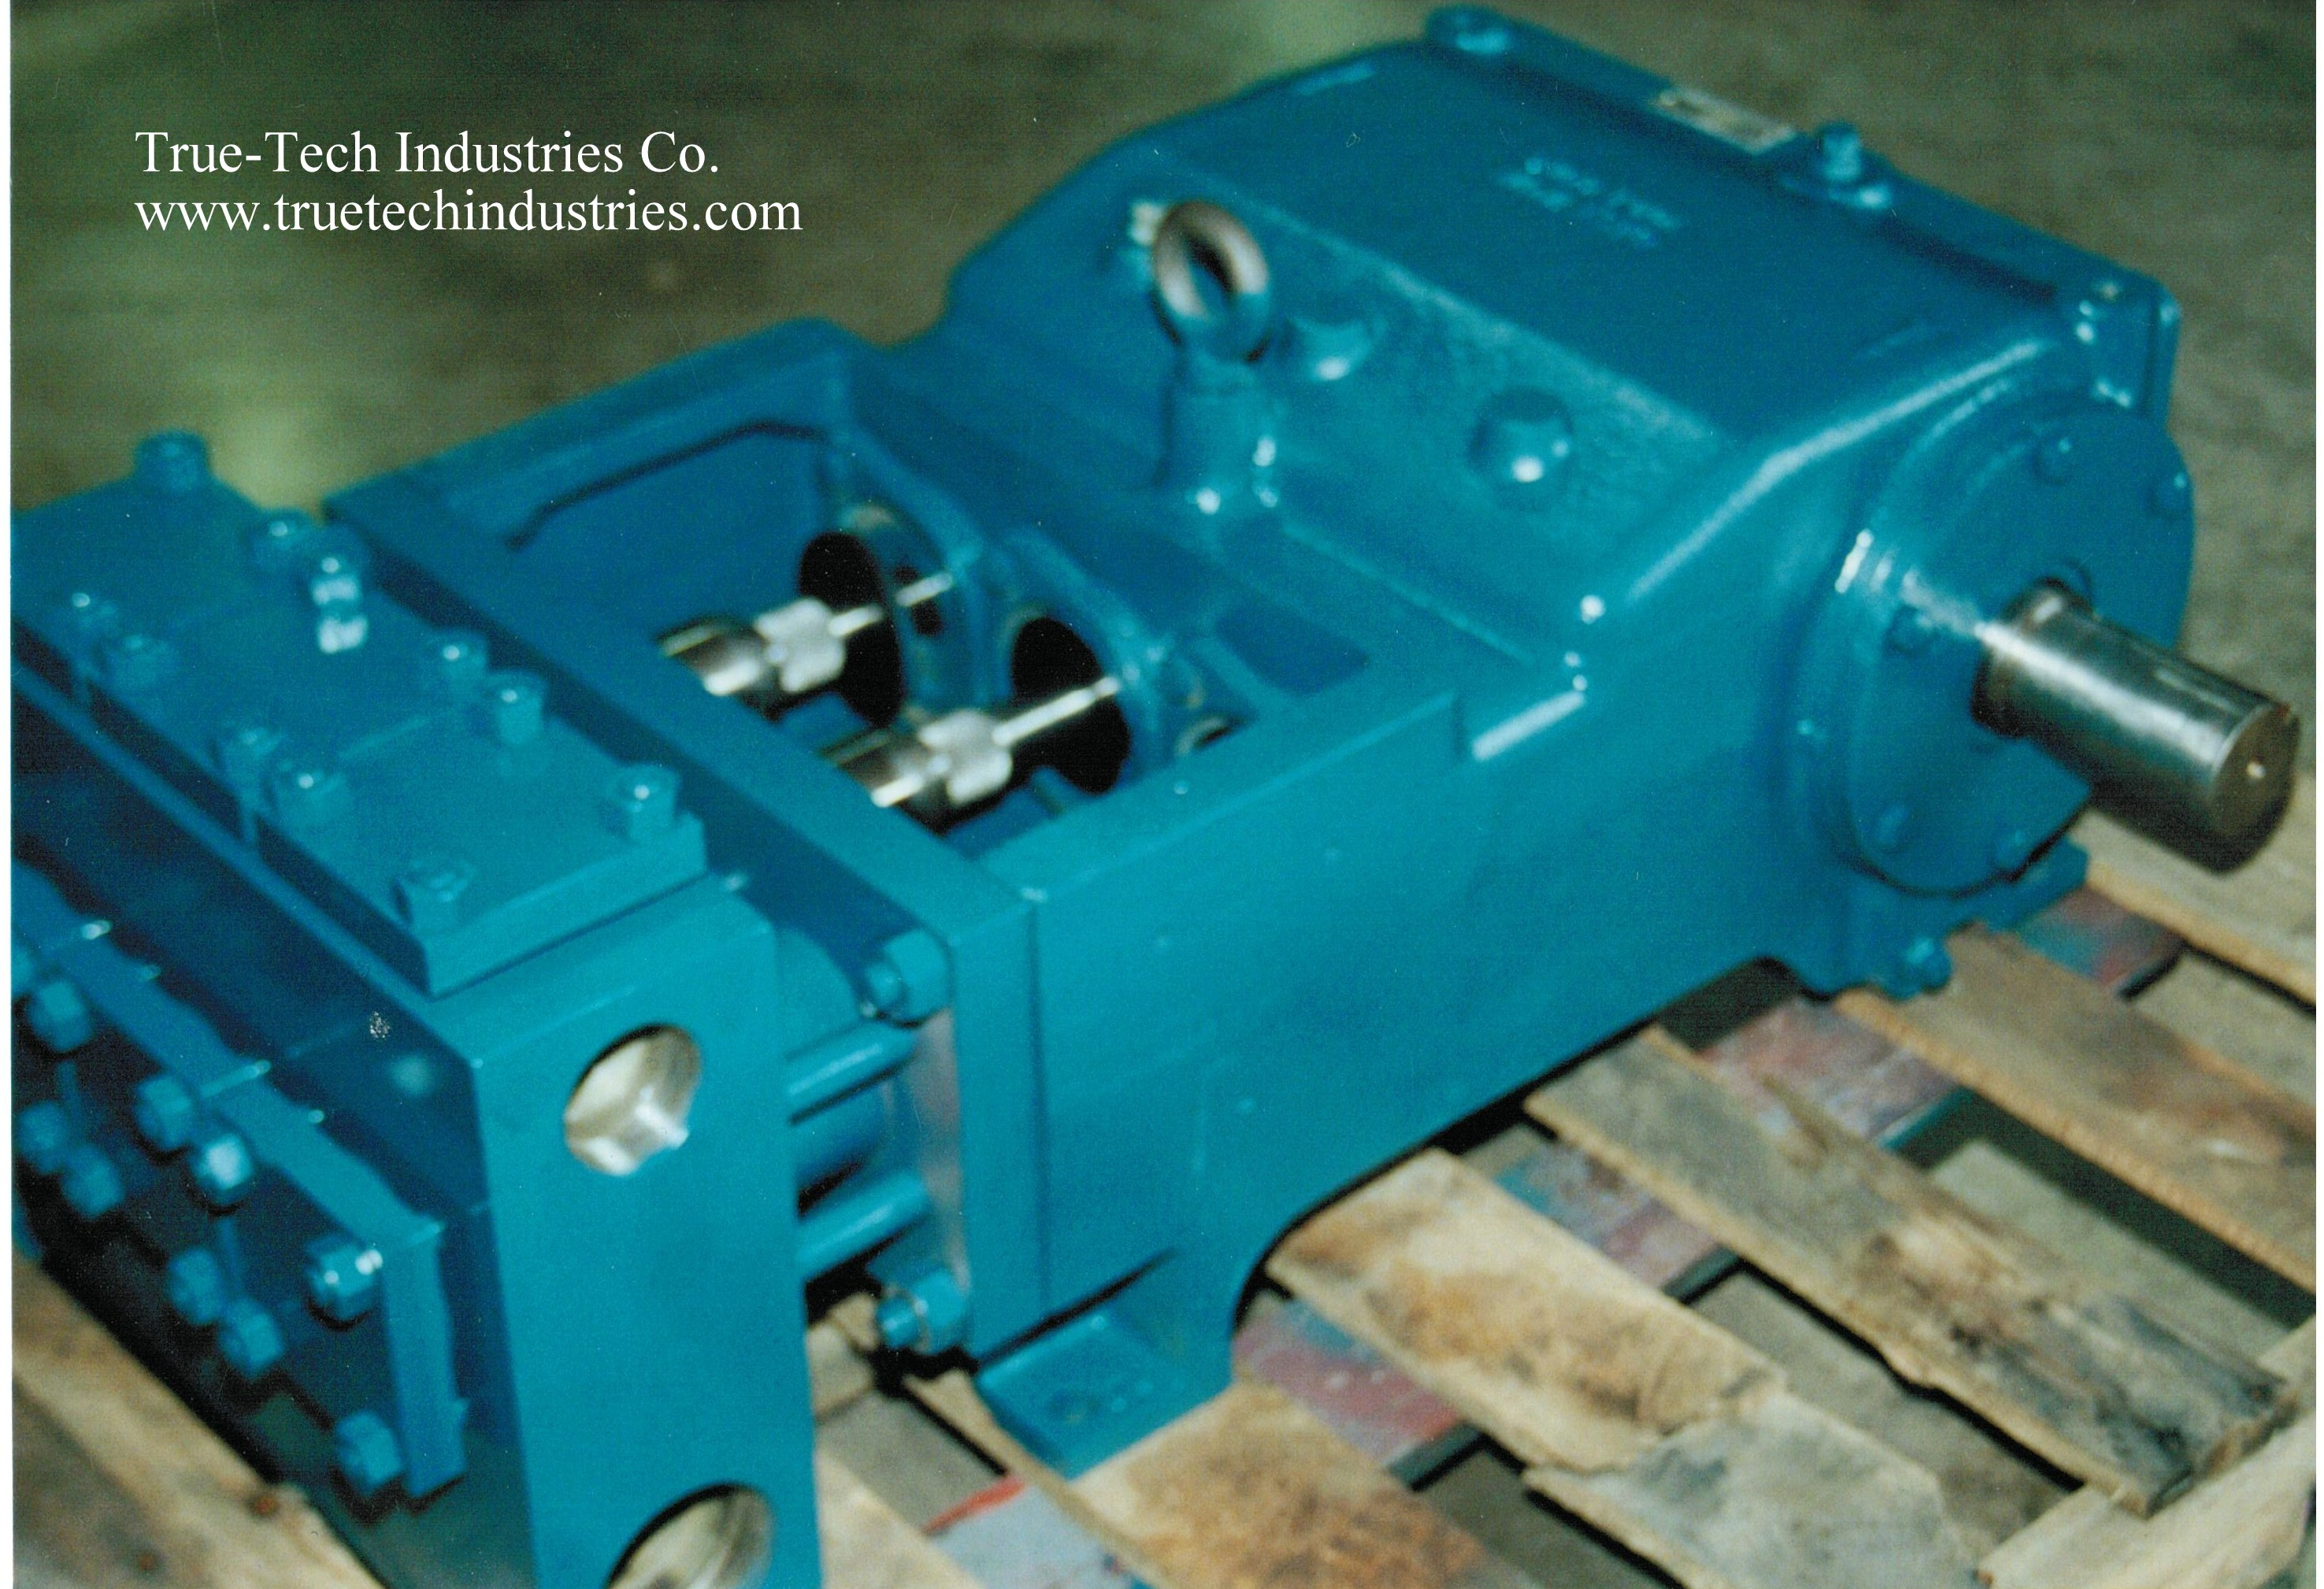 True-Tech Industries Co  - Pumps and Blowers